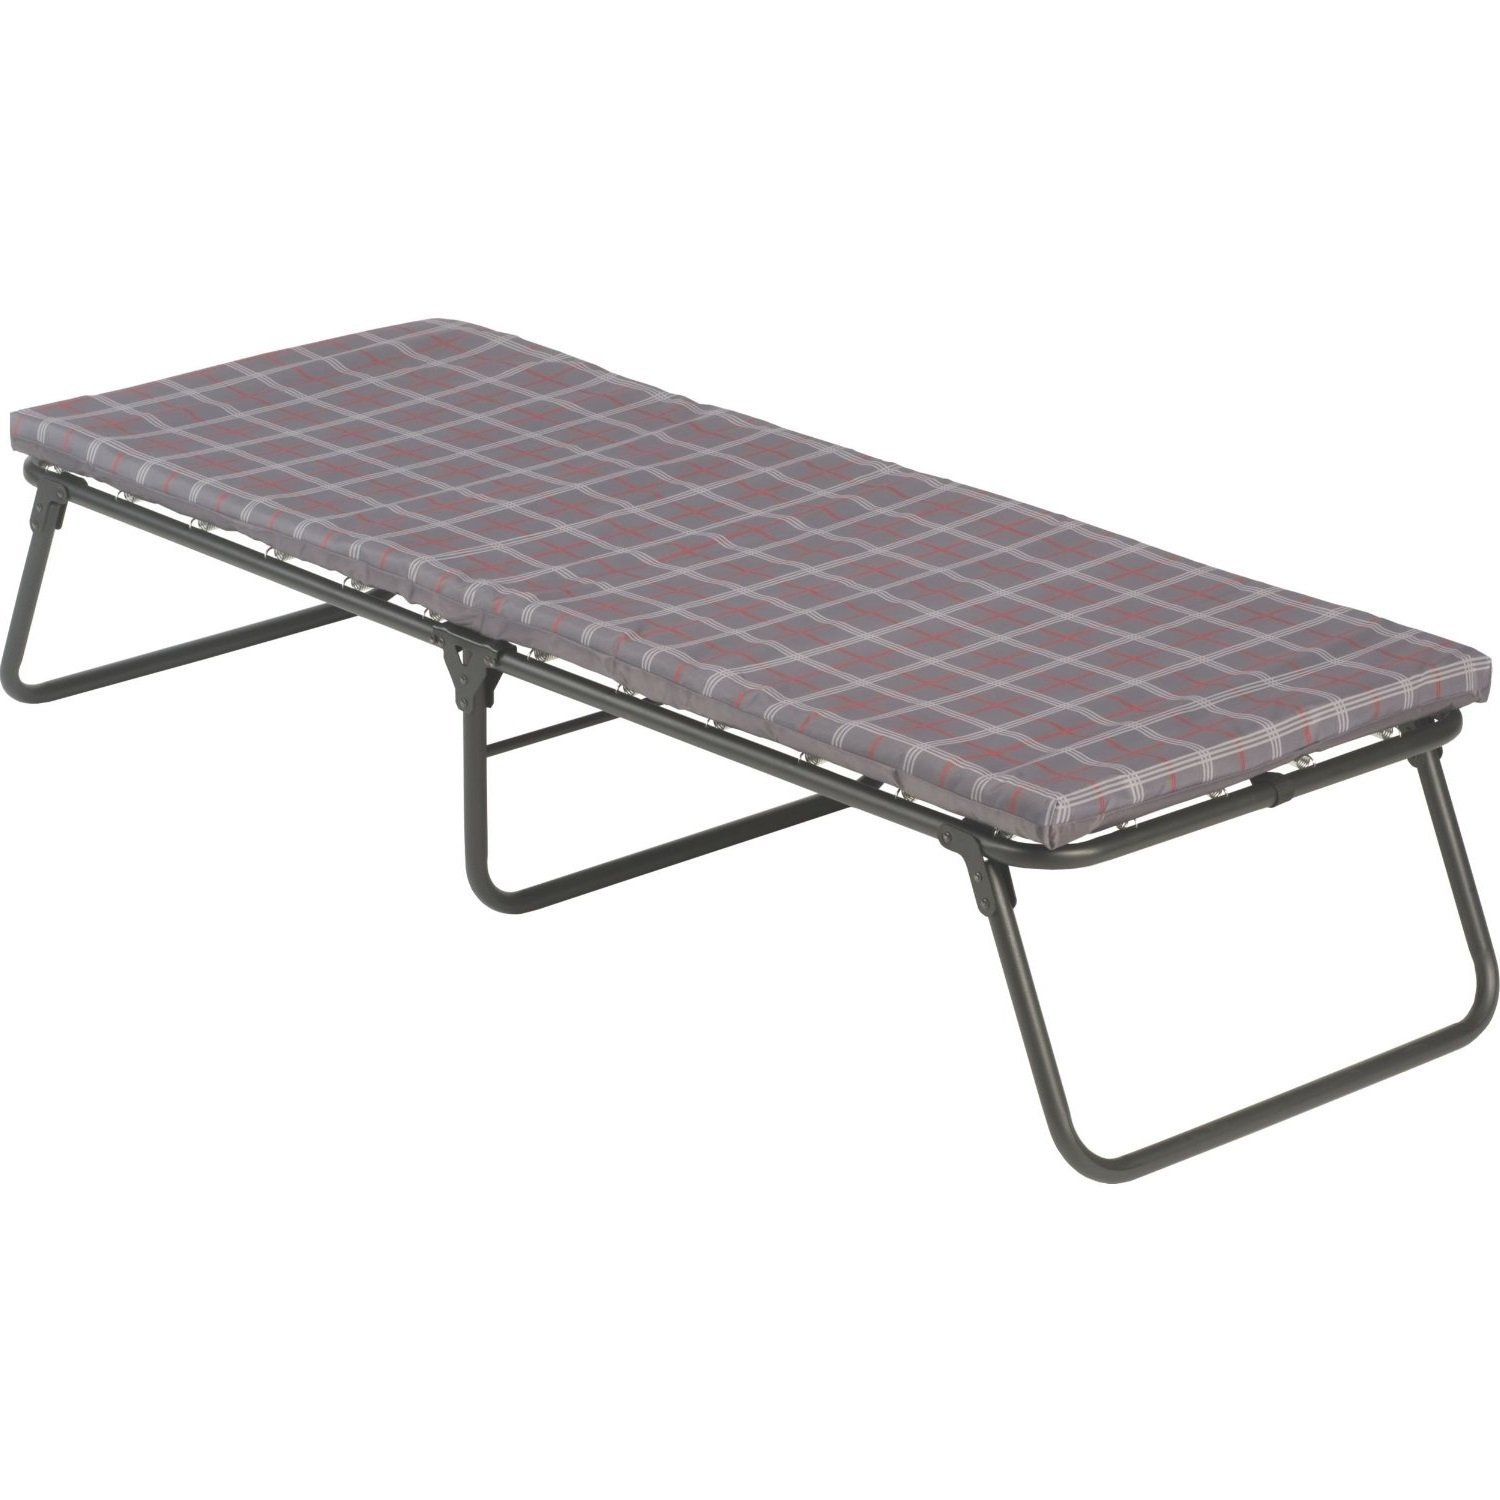 Buy Camping Cot Coleman Folding Bed With Foam Mattress Pad Heavy